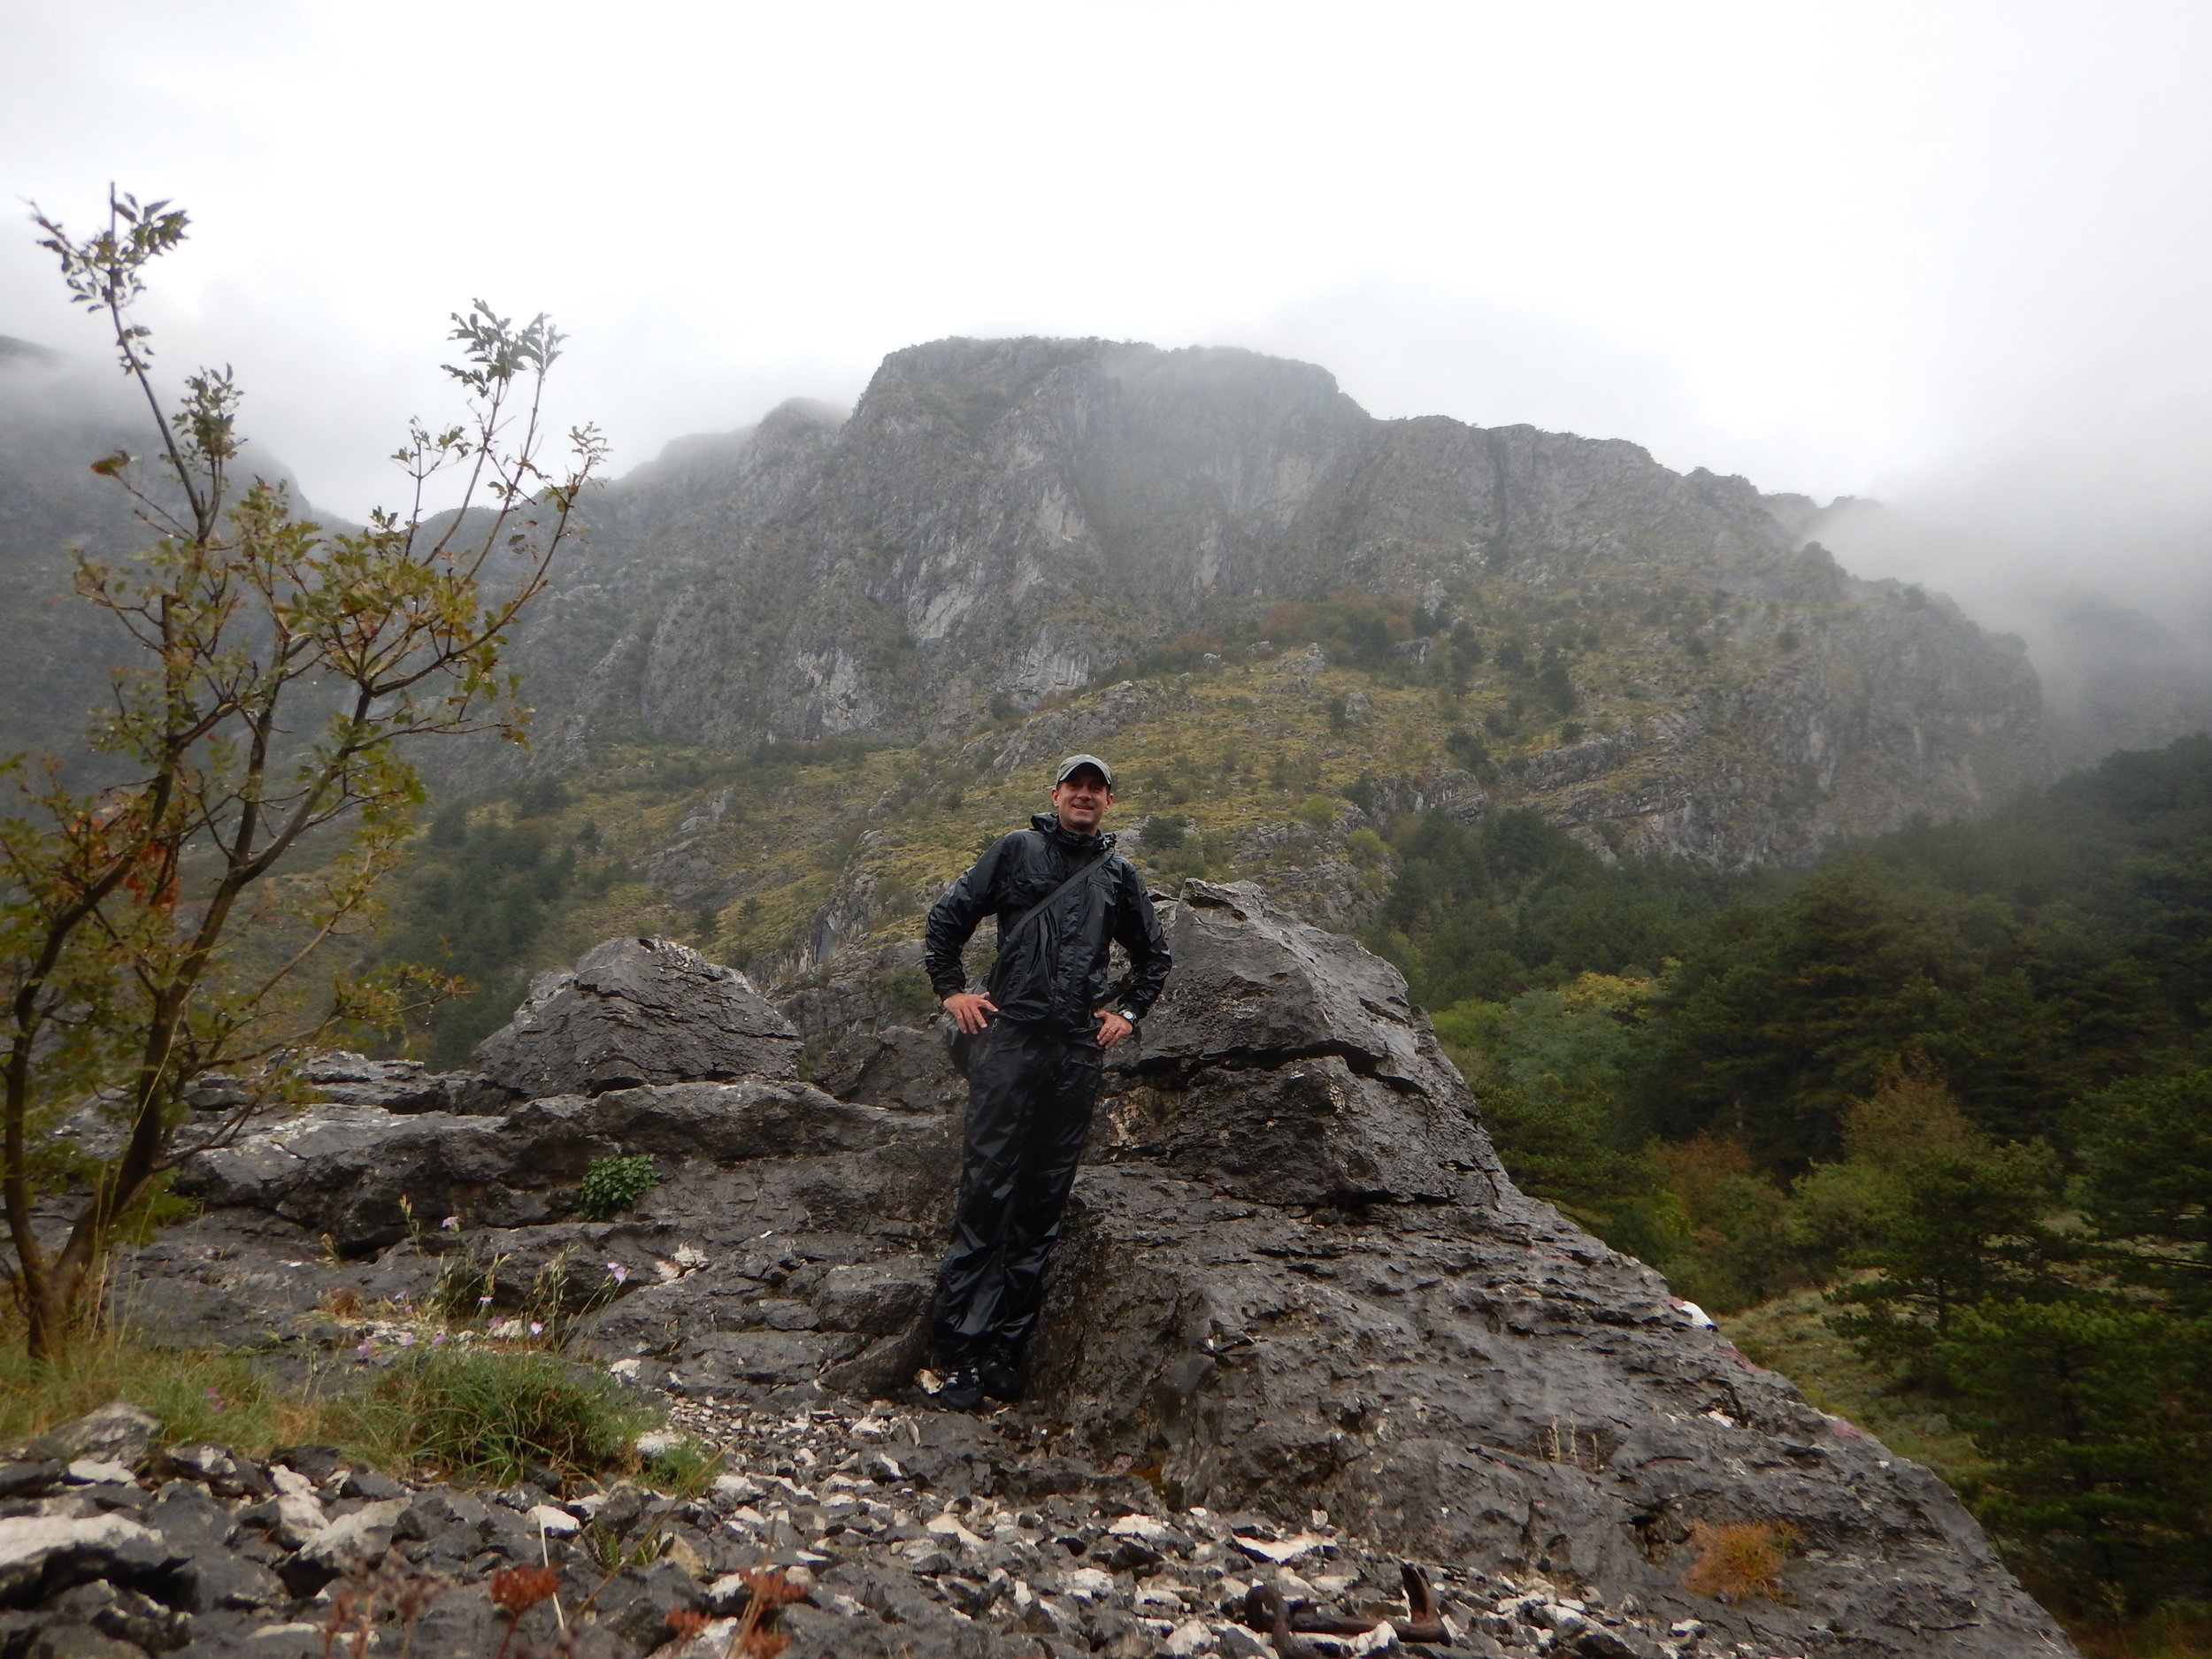 A wet hike up the Ladder of Cattaro (Kotor). So wet - and more importantly, dangerous alone - I decided to turn around after three and a half hours. Not quite to the top. Darn.